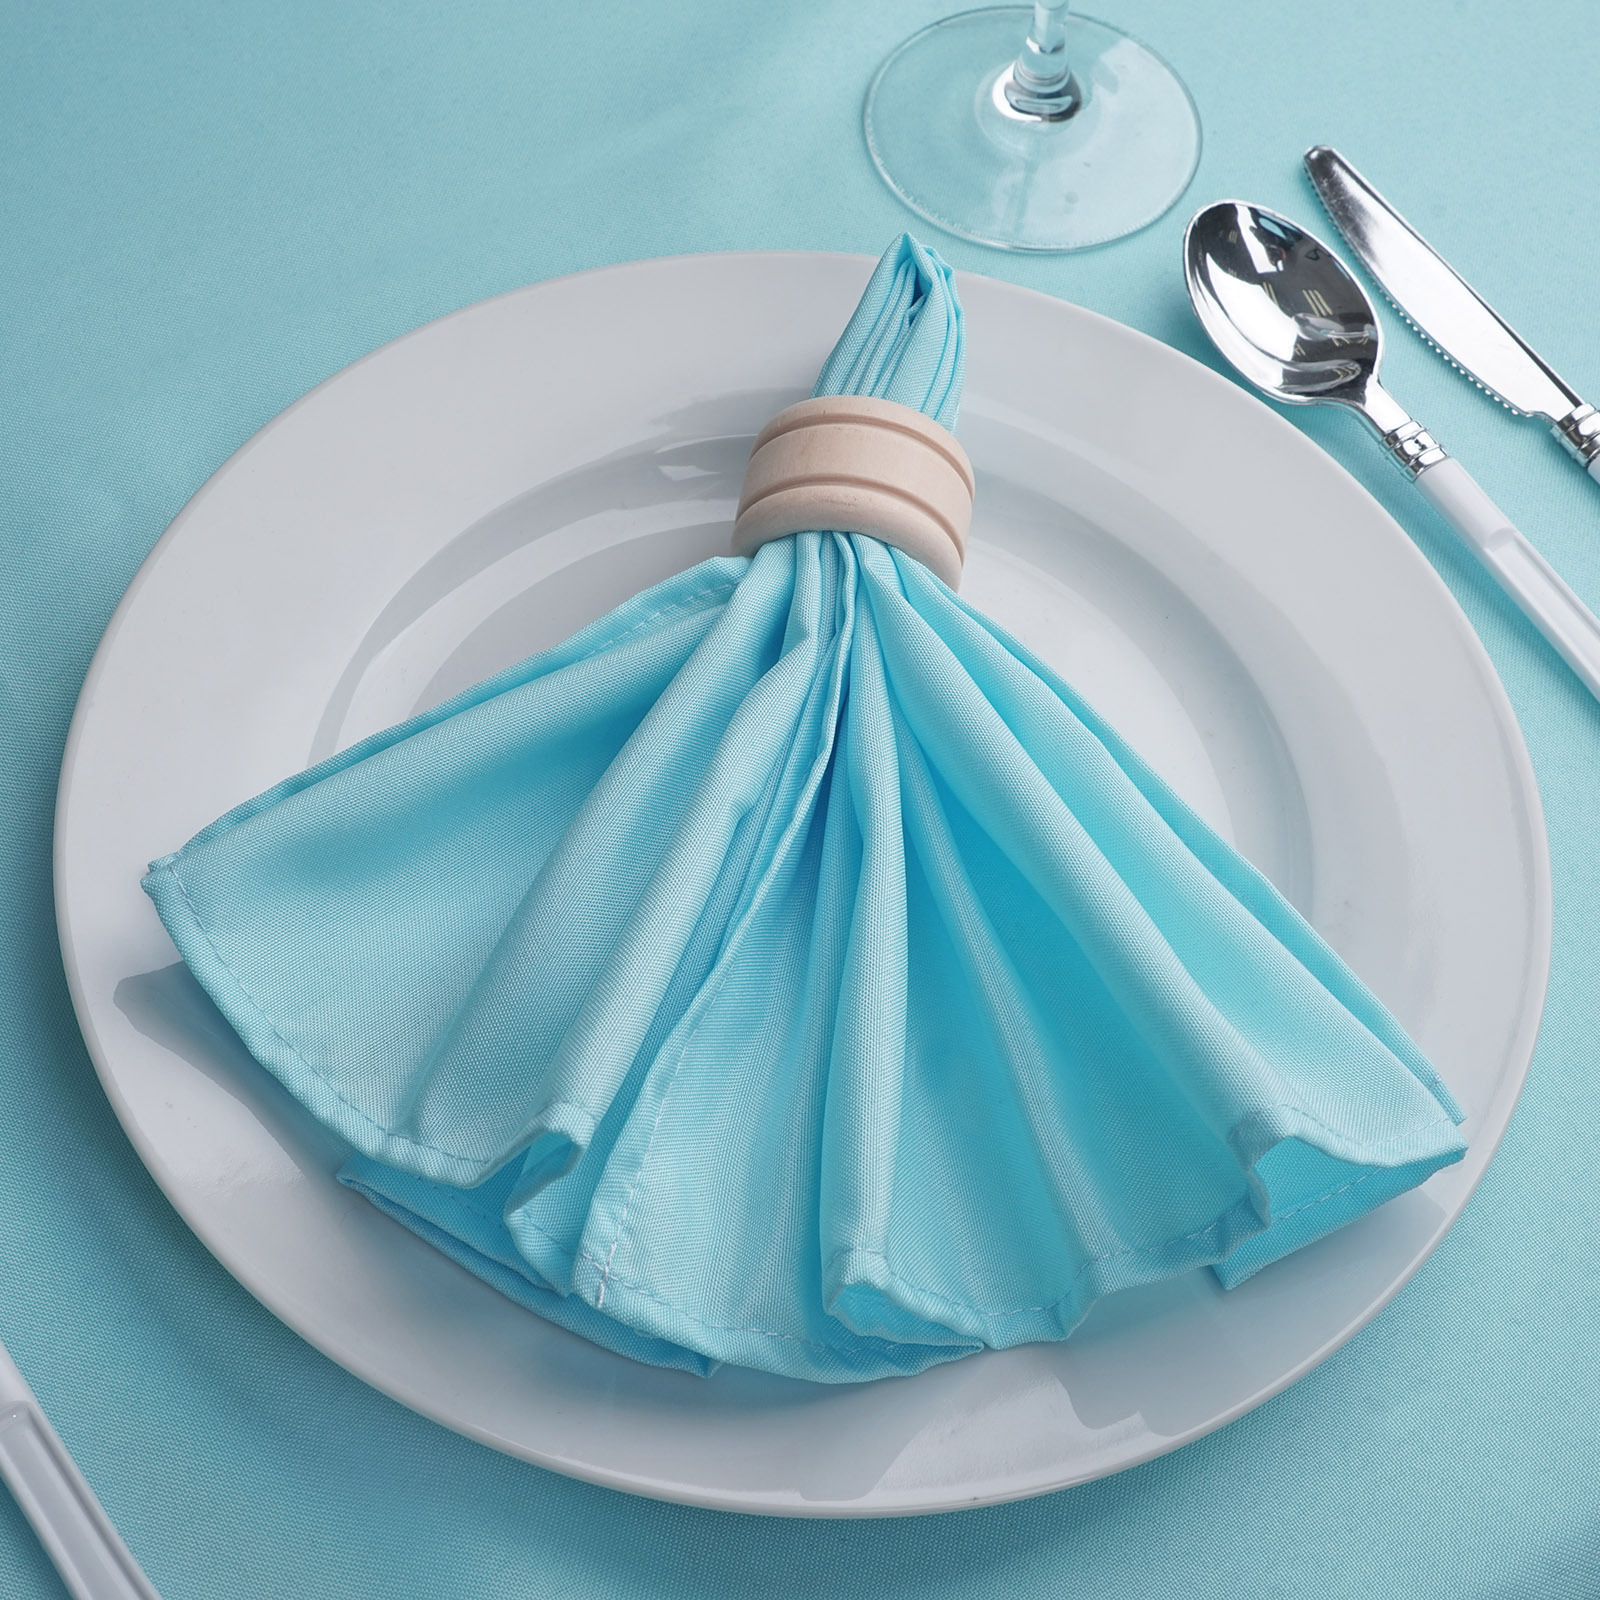 100 pcs 18X18 Polyester Napkins Wedding Party Table Decorations Supply Royal Blue 150